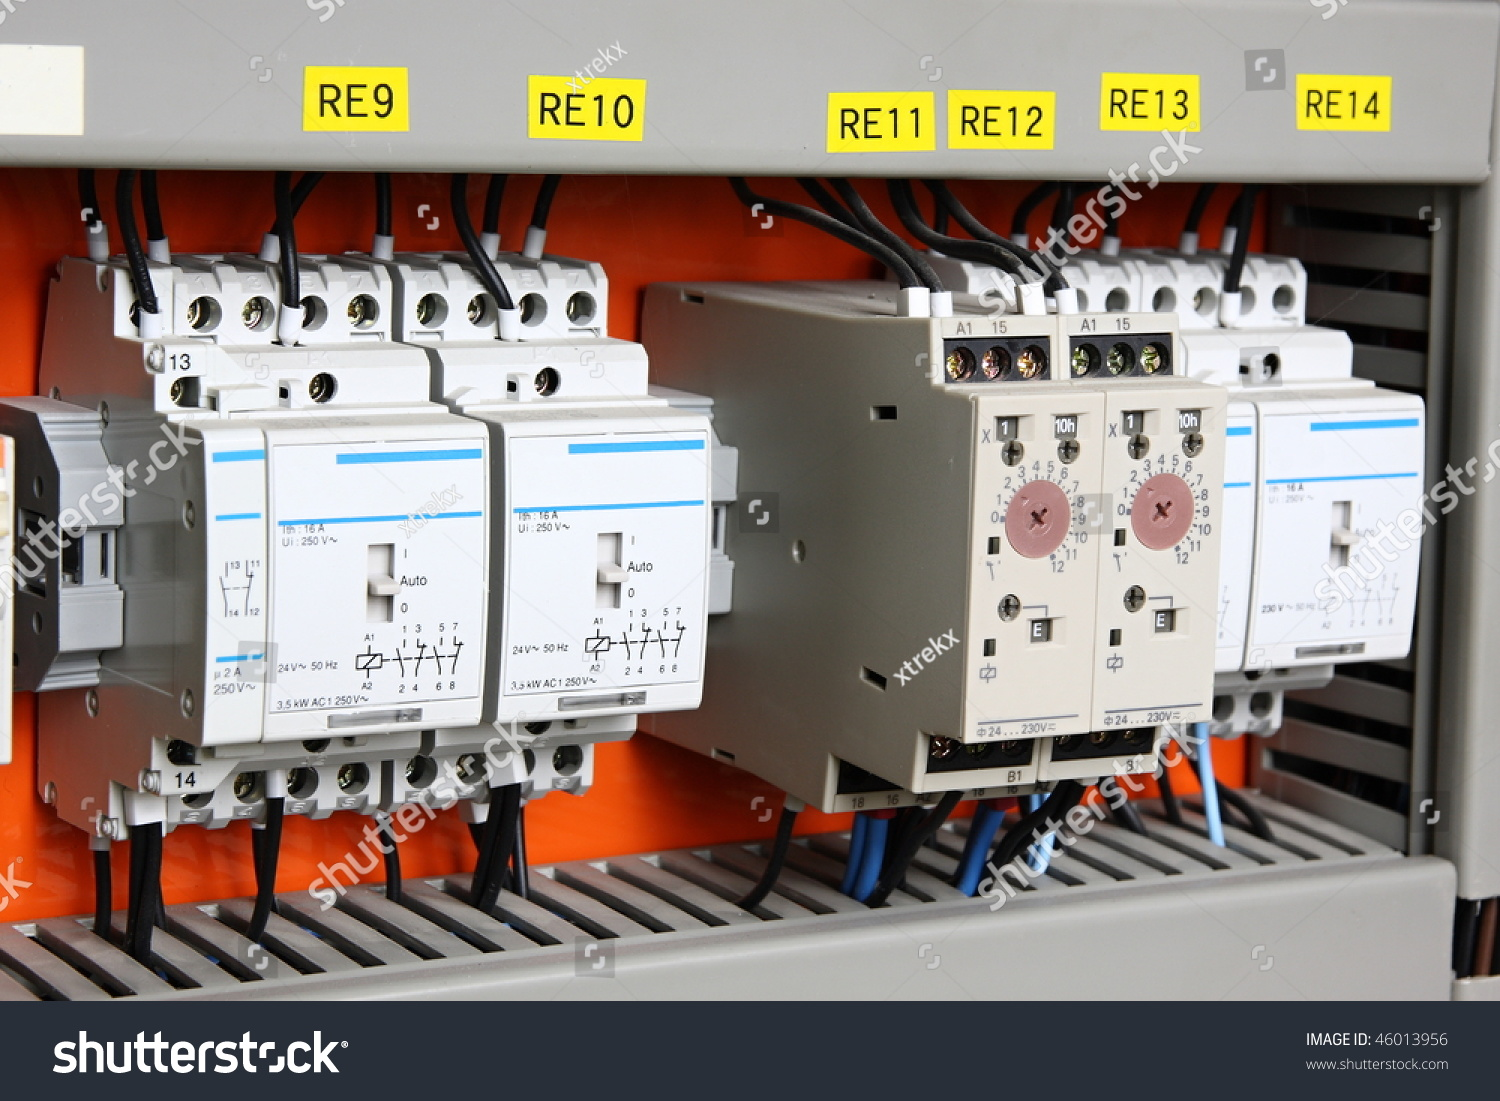 Fuse box stock photo 46013956 shutterstock fuse box bell transformer Heating Element Fuse Transformer Duty Cycle on fuse box transformer